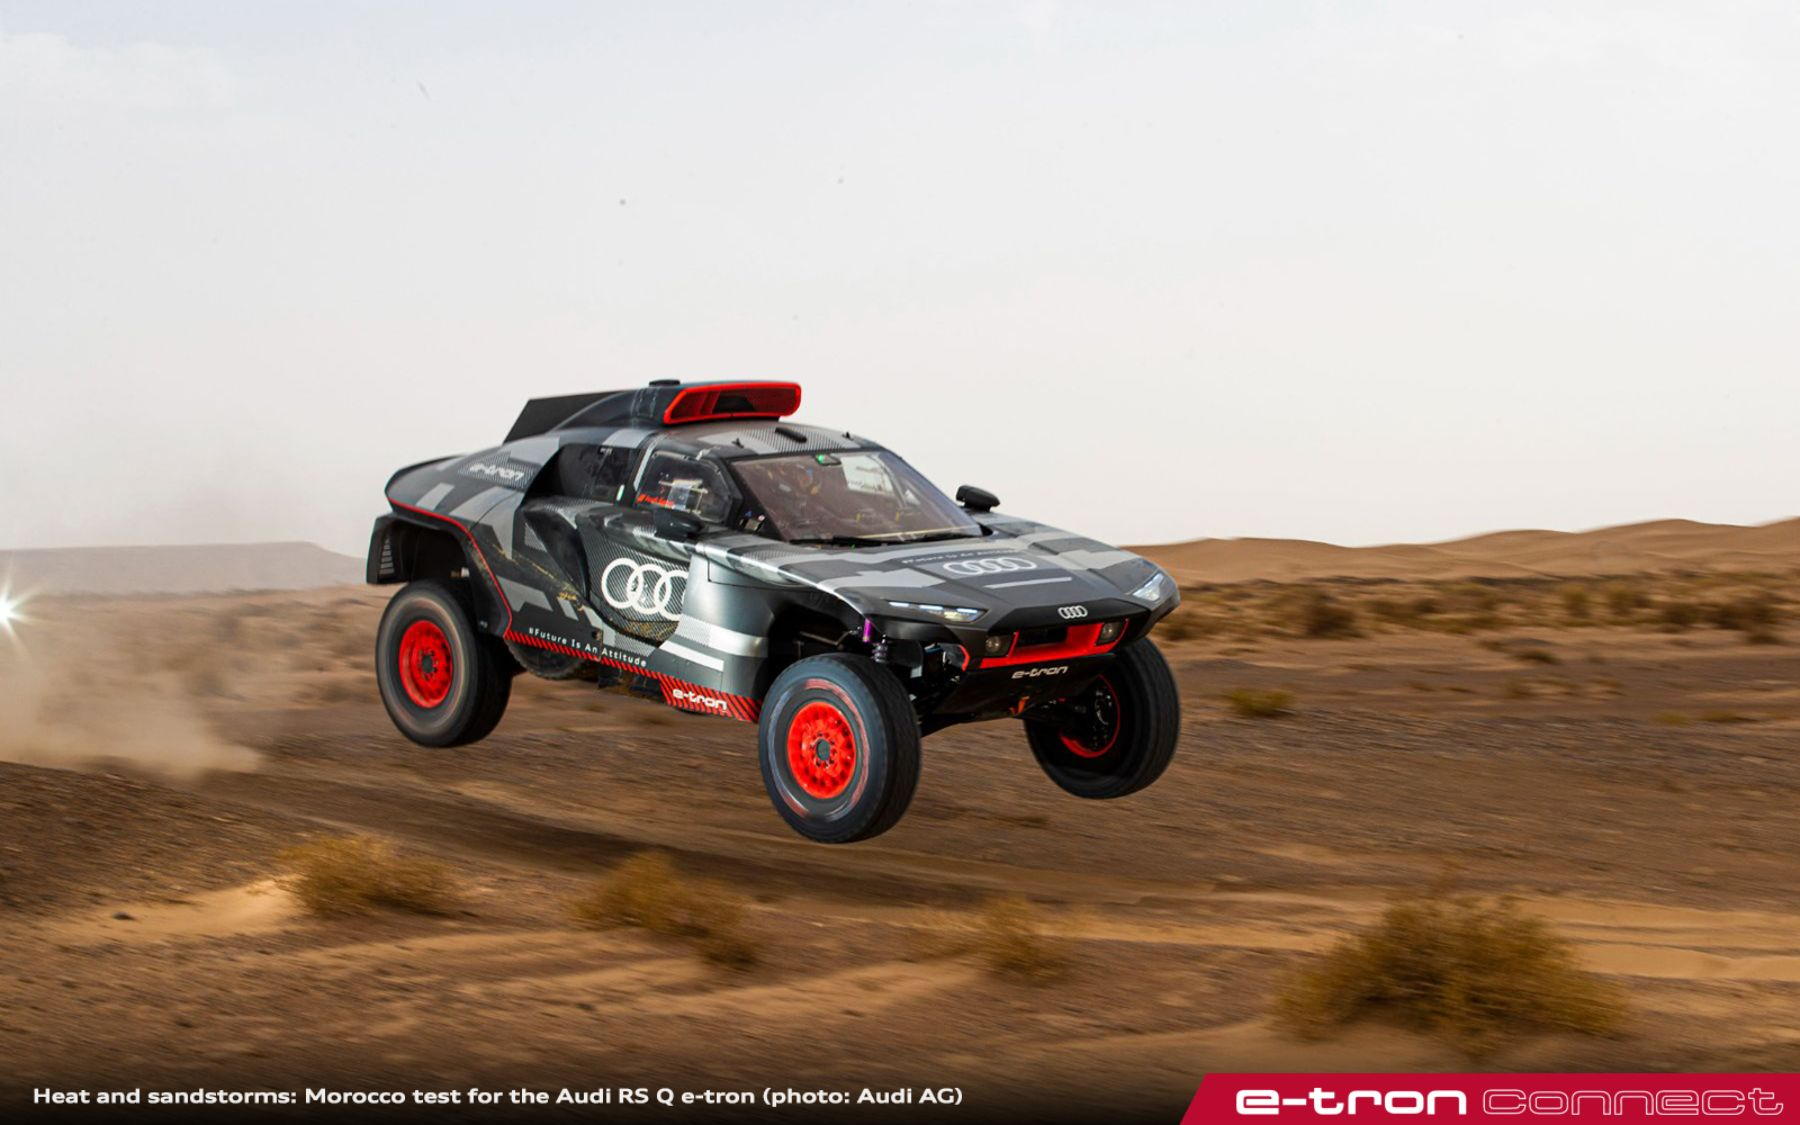 Heat and Sandstorms: Morocco Test for the Audi RS Q e-tron